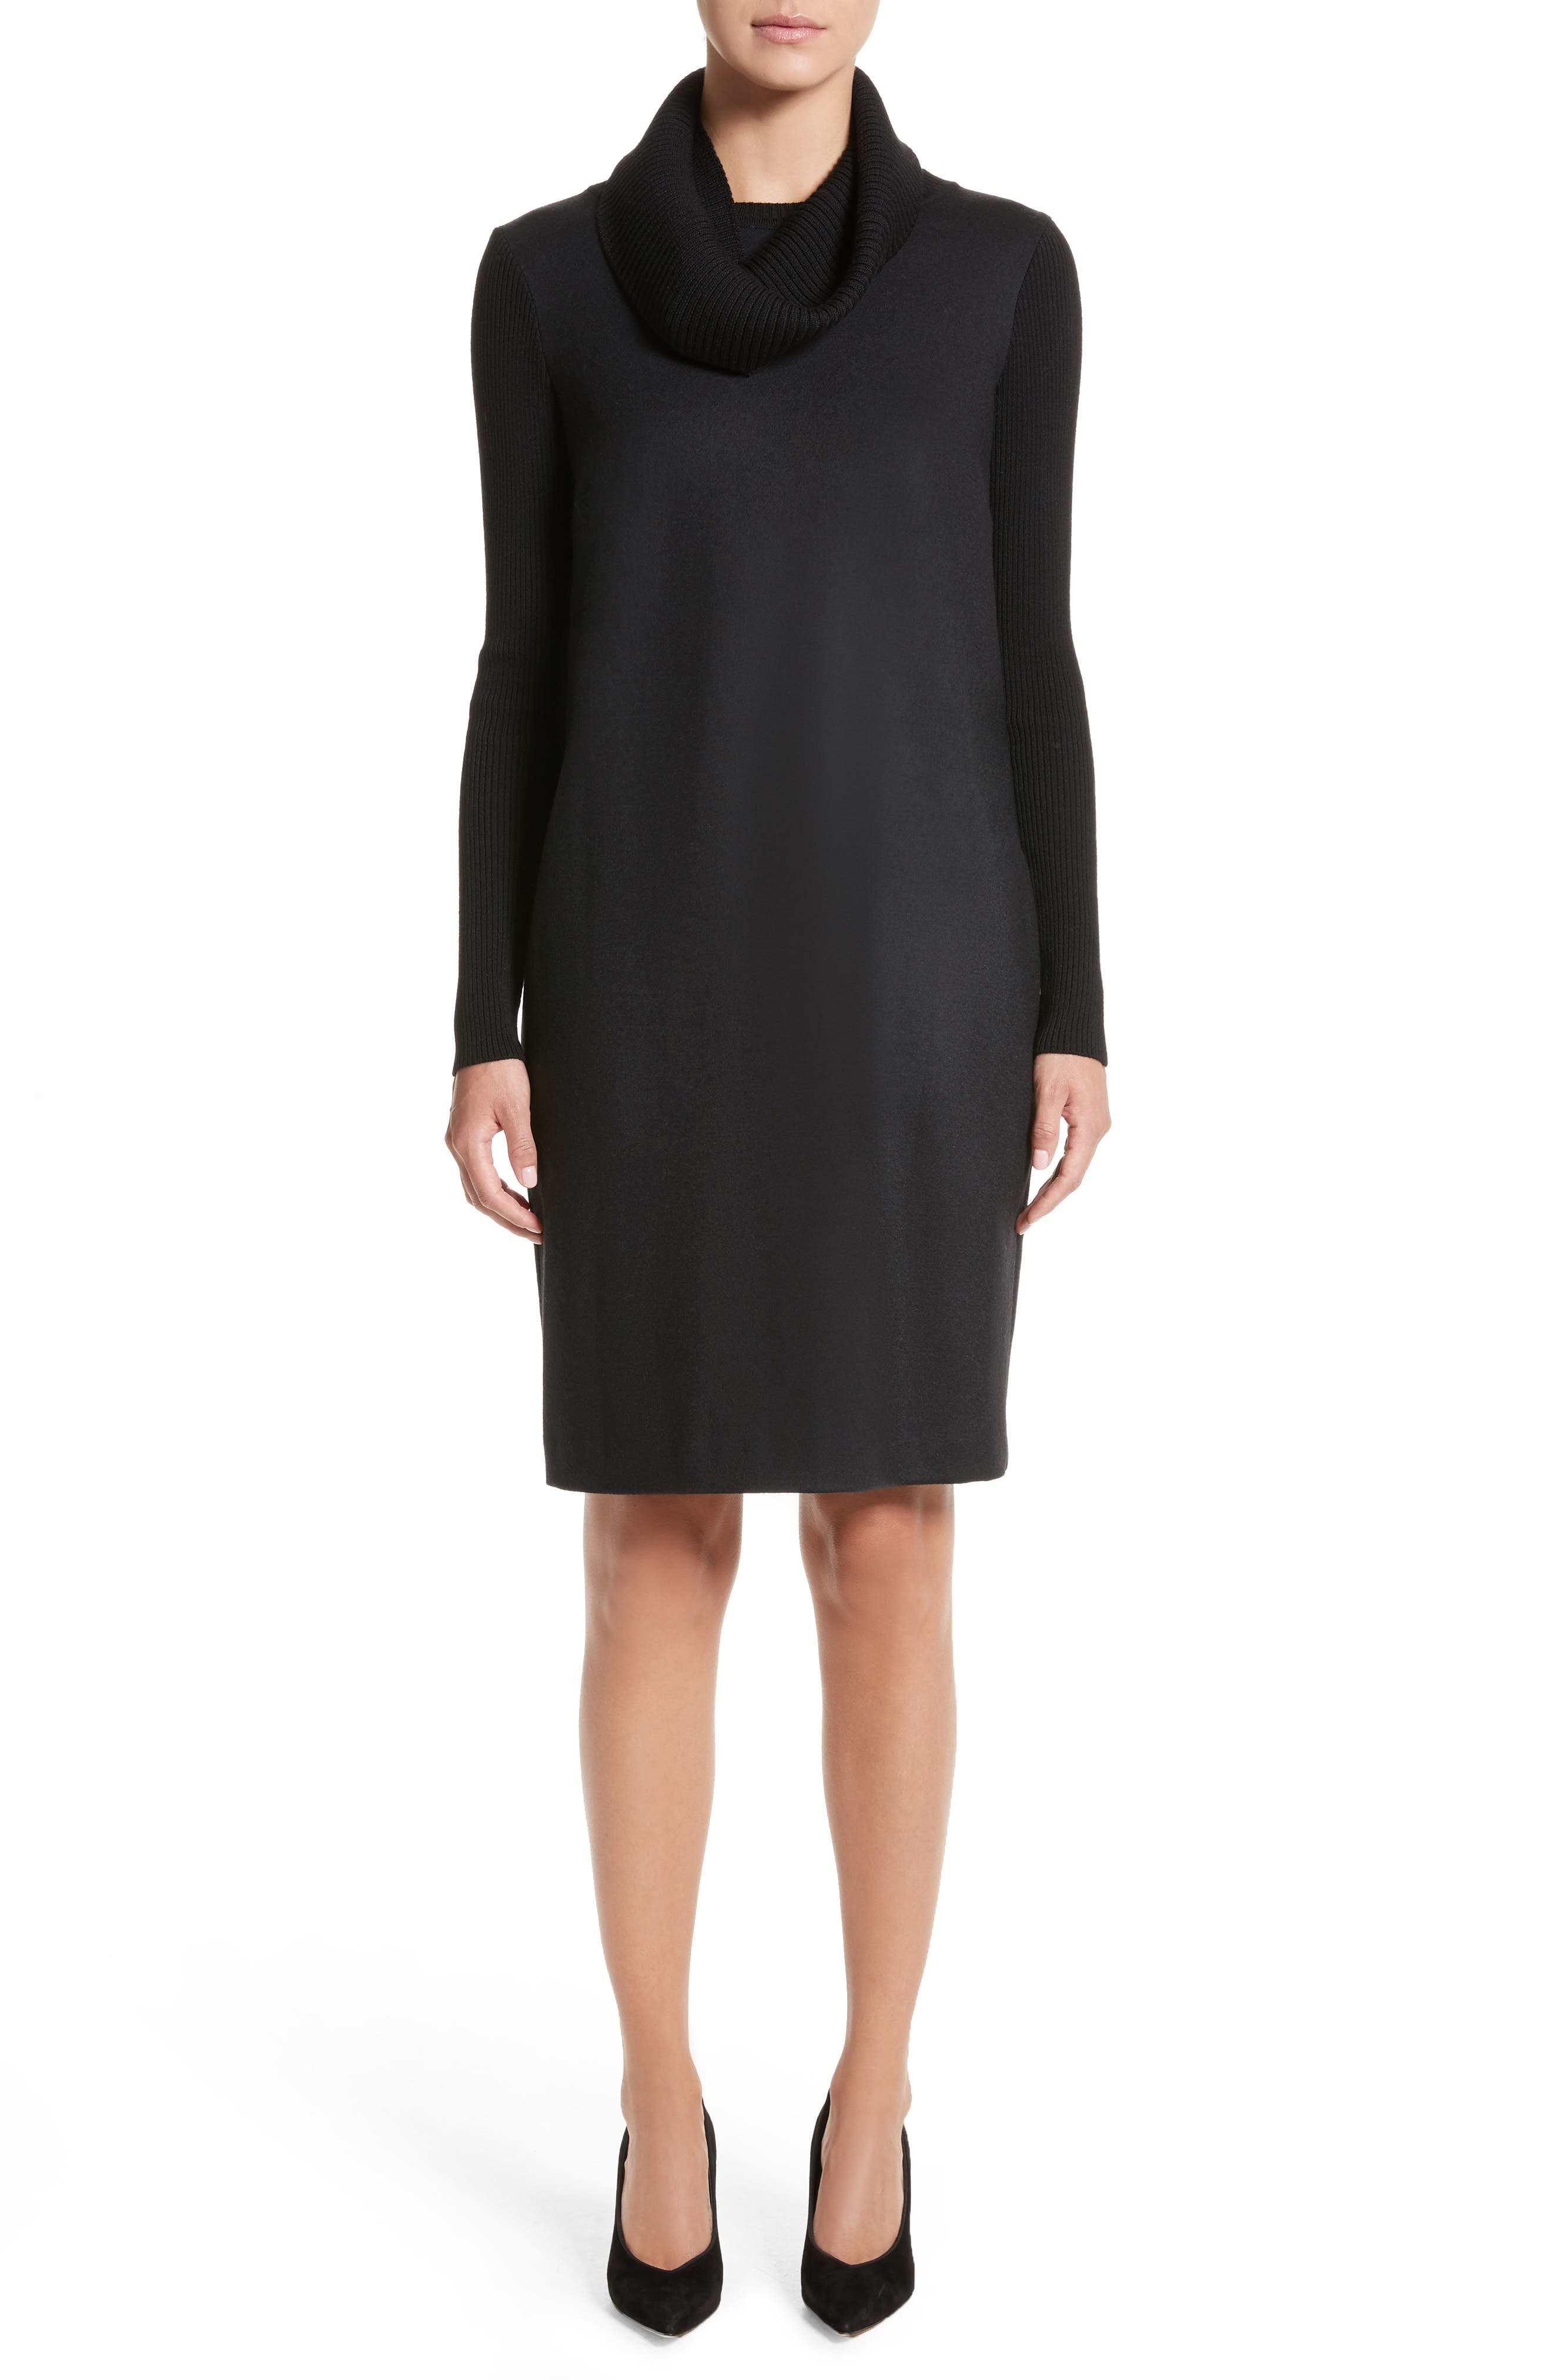 Cancan Wool Jersey Dress with Removable Knit Cowl,                             Main thumbnail 1, color,                             001